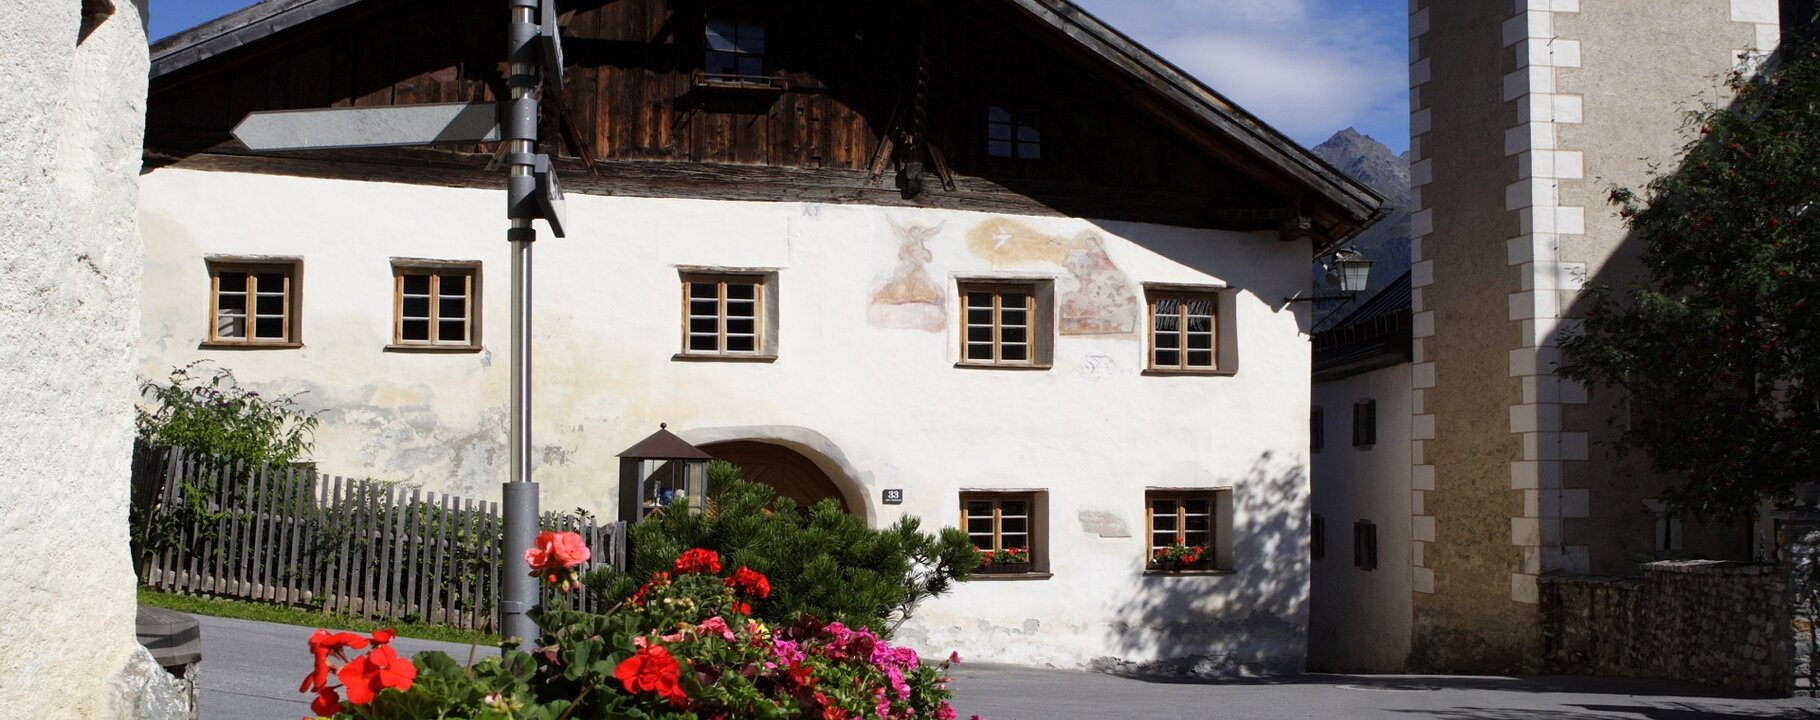 gallery at the church square in Fiss | © Serfaus-Fiss-Ladis/Tirol